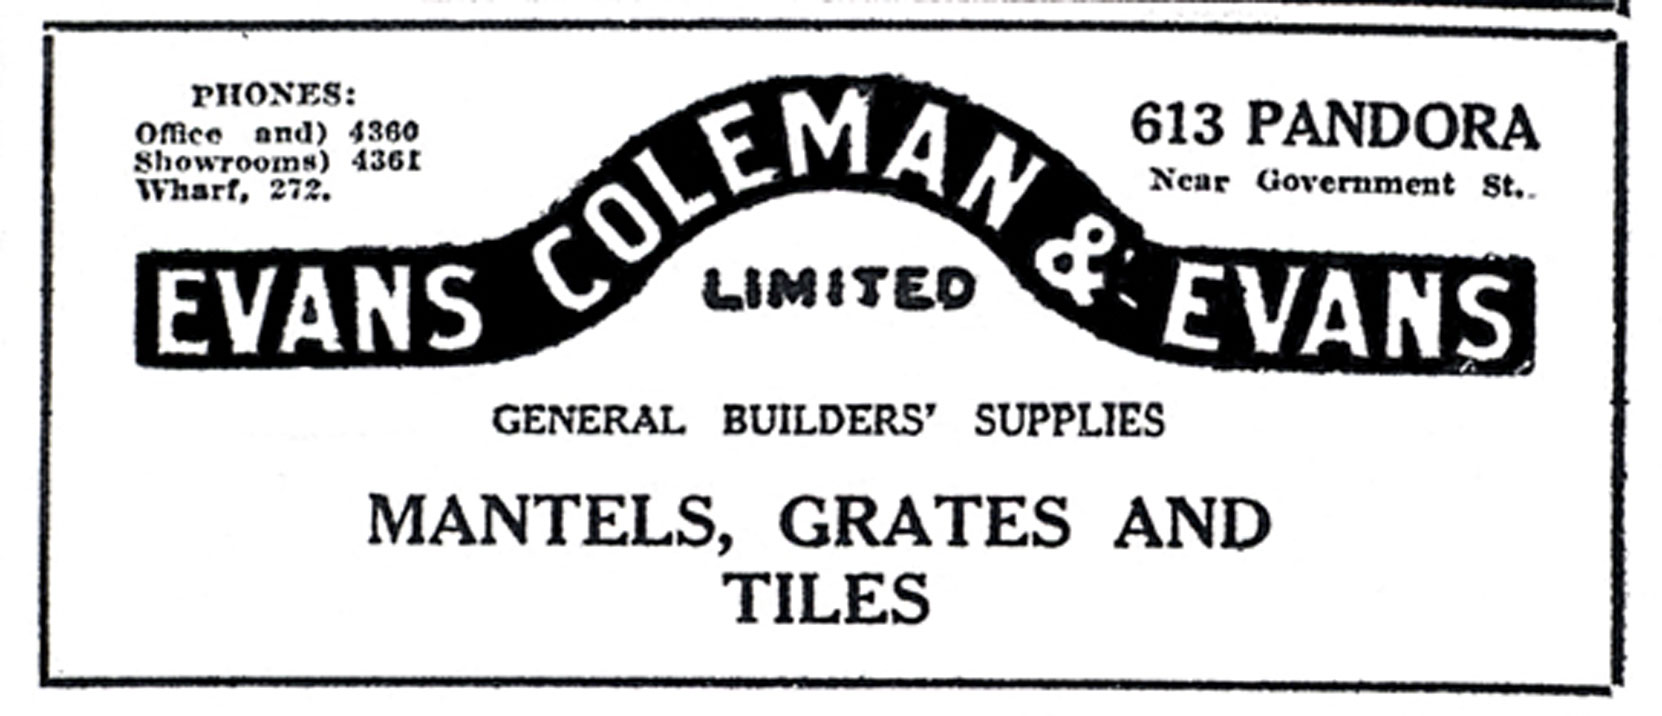 Victoria newspaper advertisement for Evans Coleman & Evans Ltd., 1914.